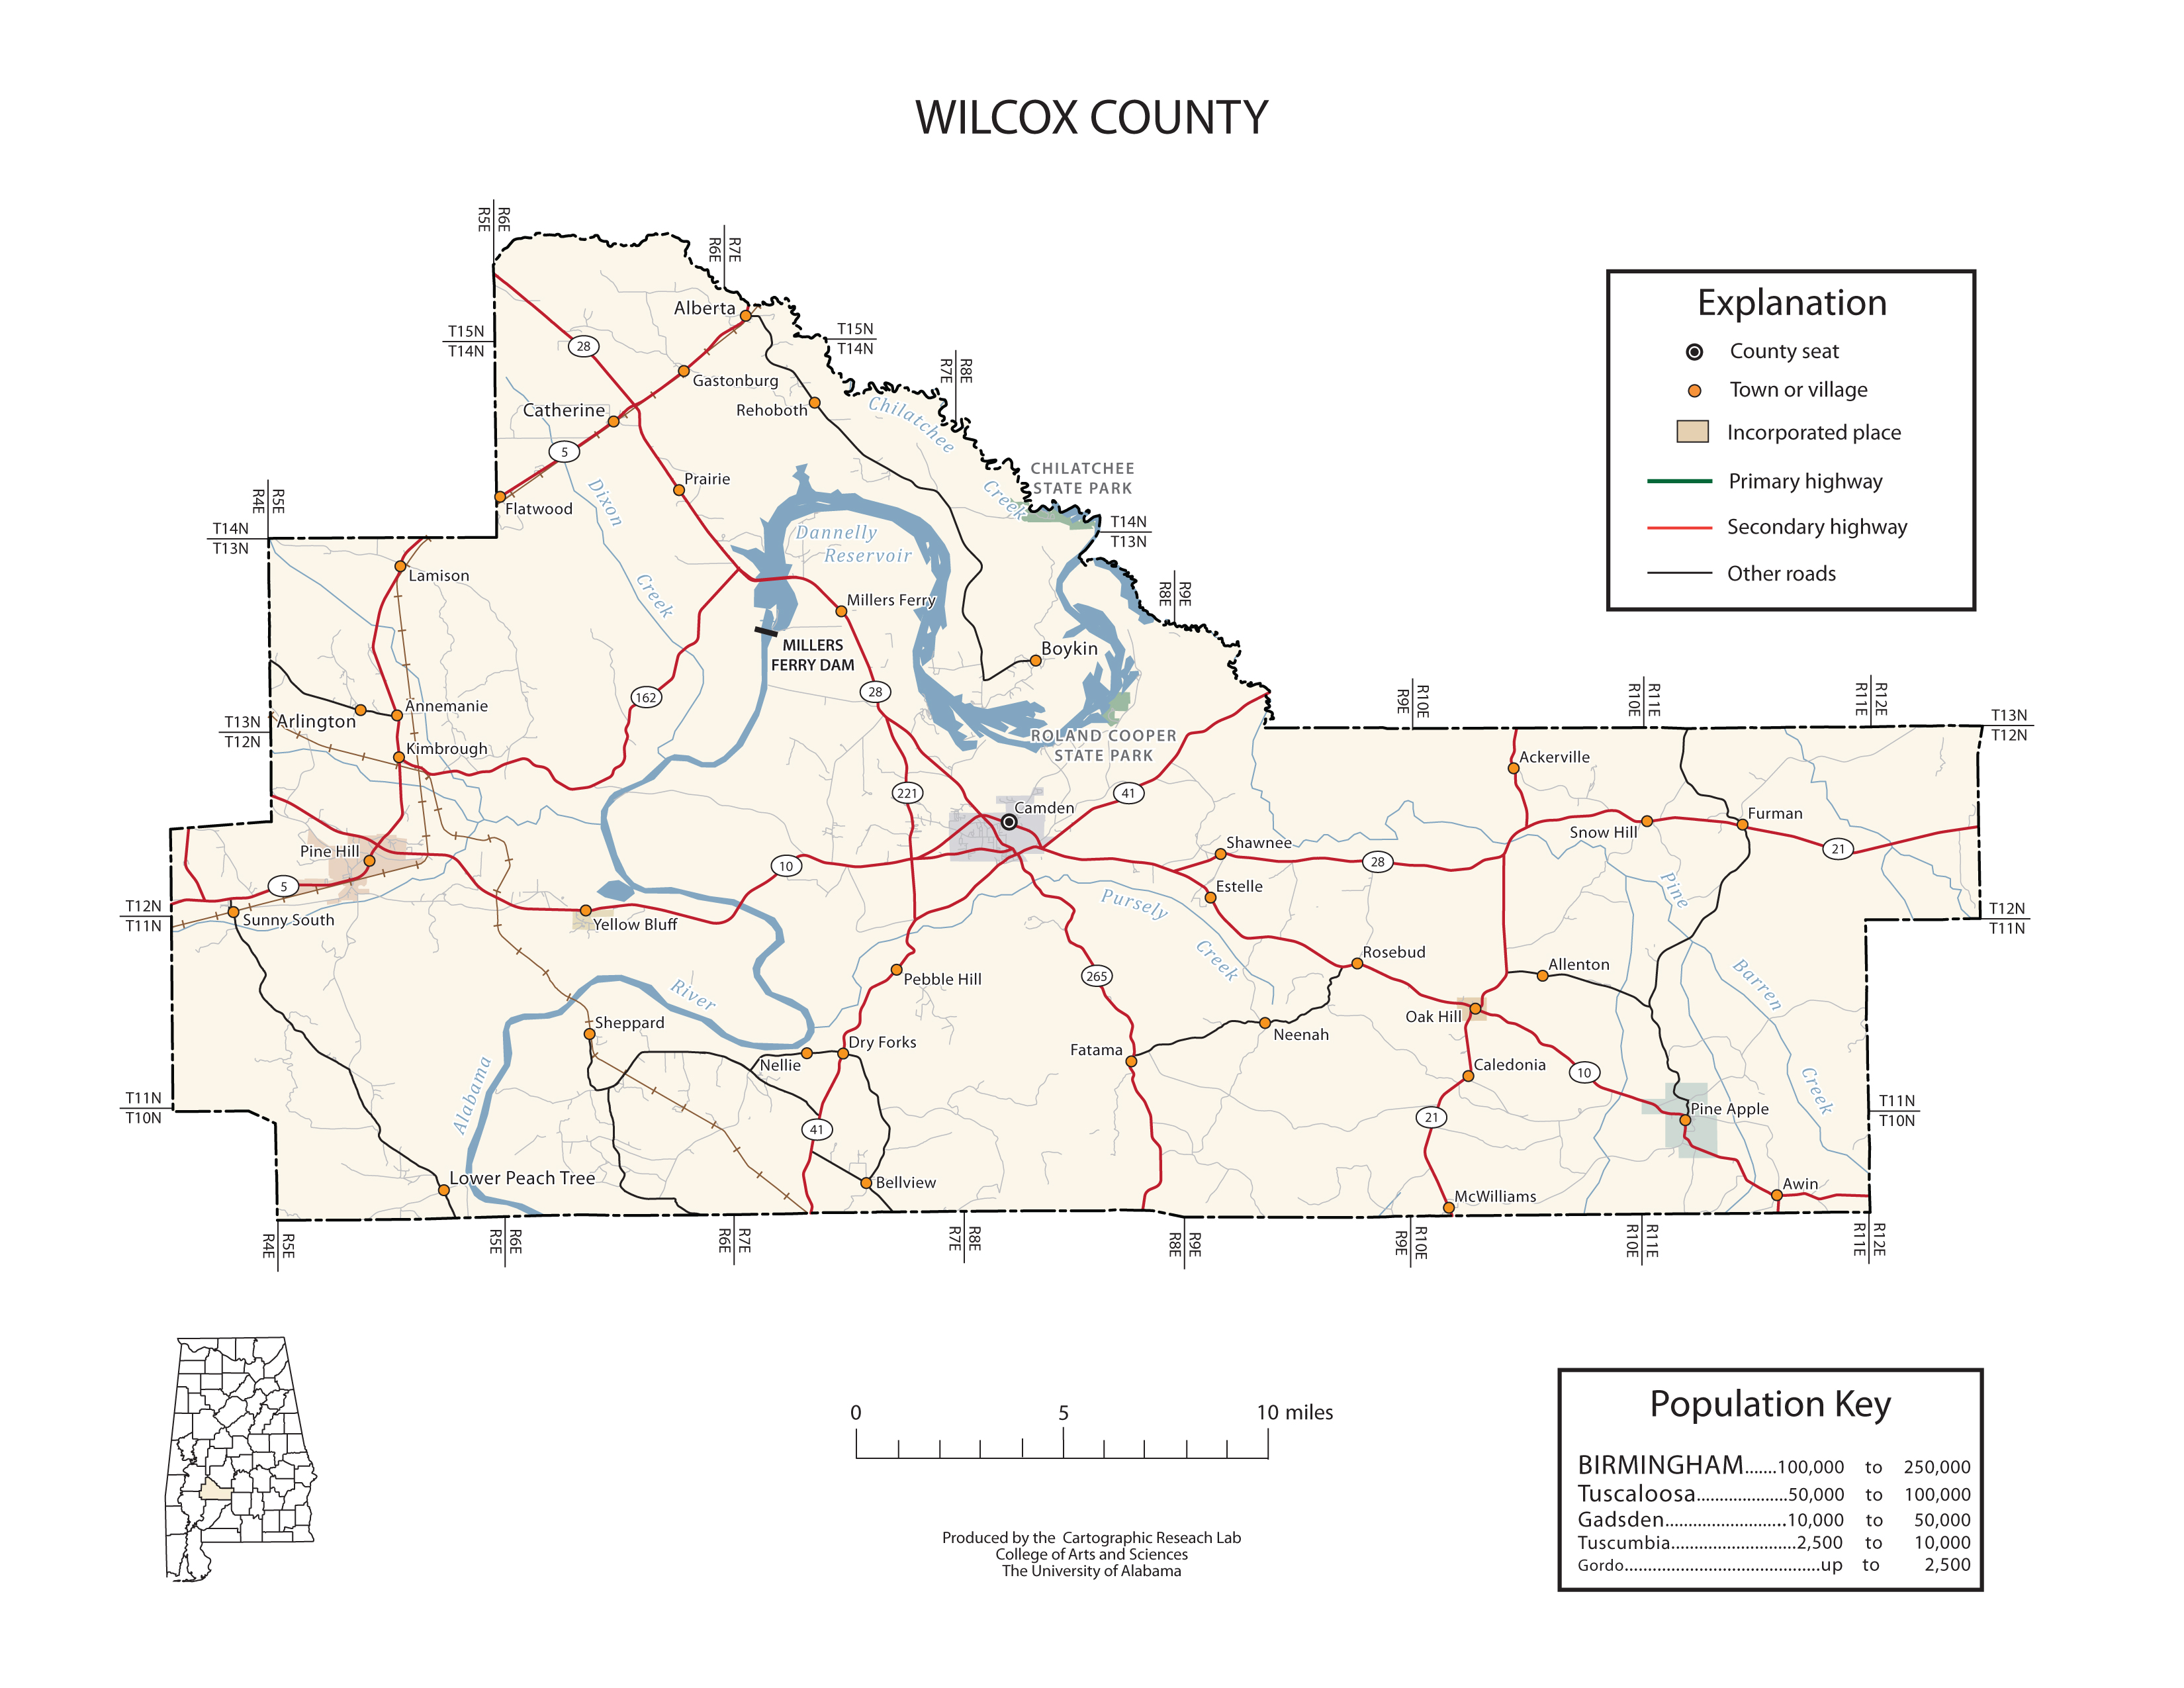 Maps of Wilcox County